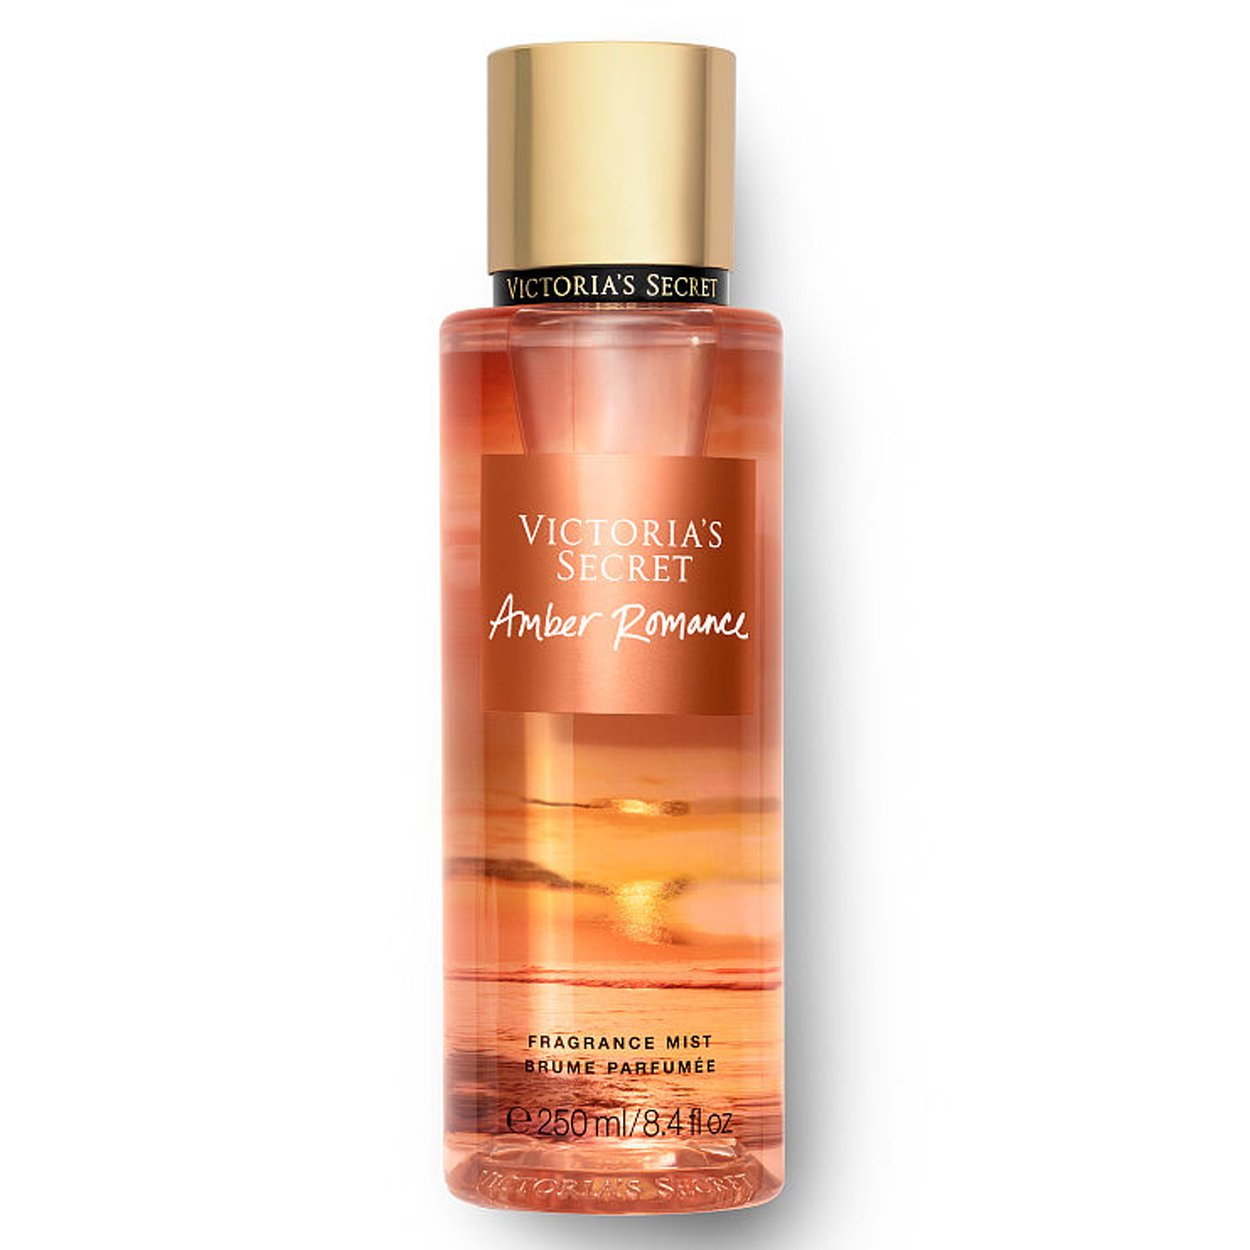 nuoc-hoa-toan-than-victoria-s-secret-fragrance-mist-amber-romance-250ml